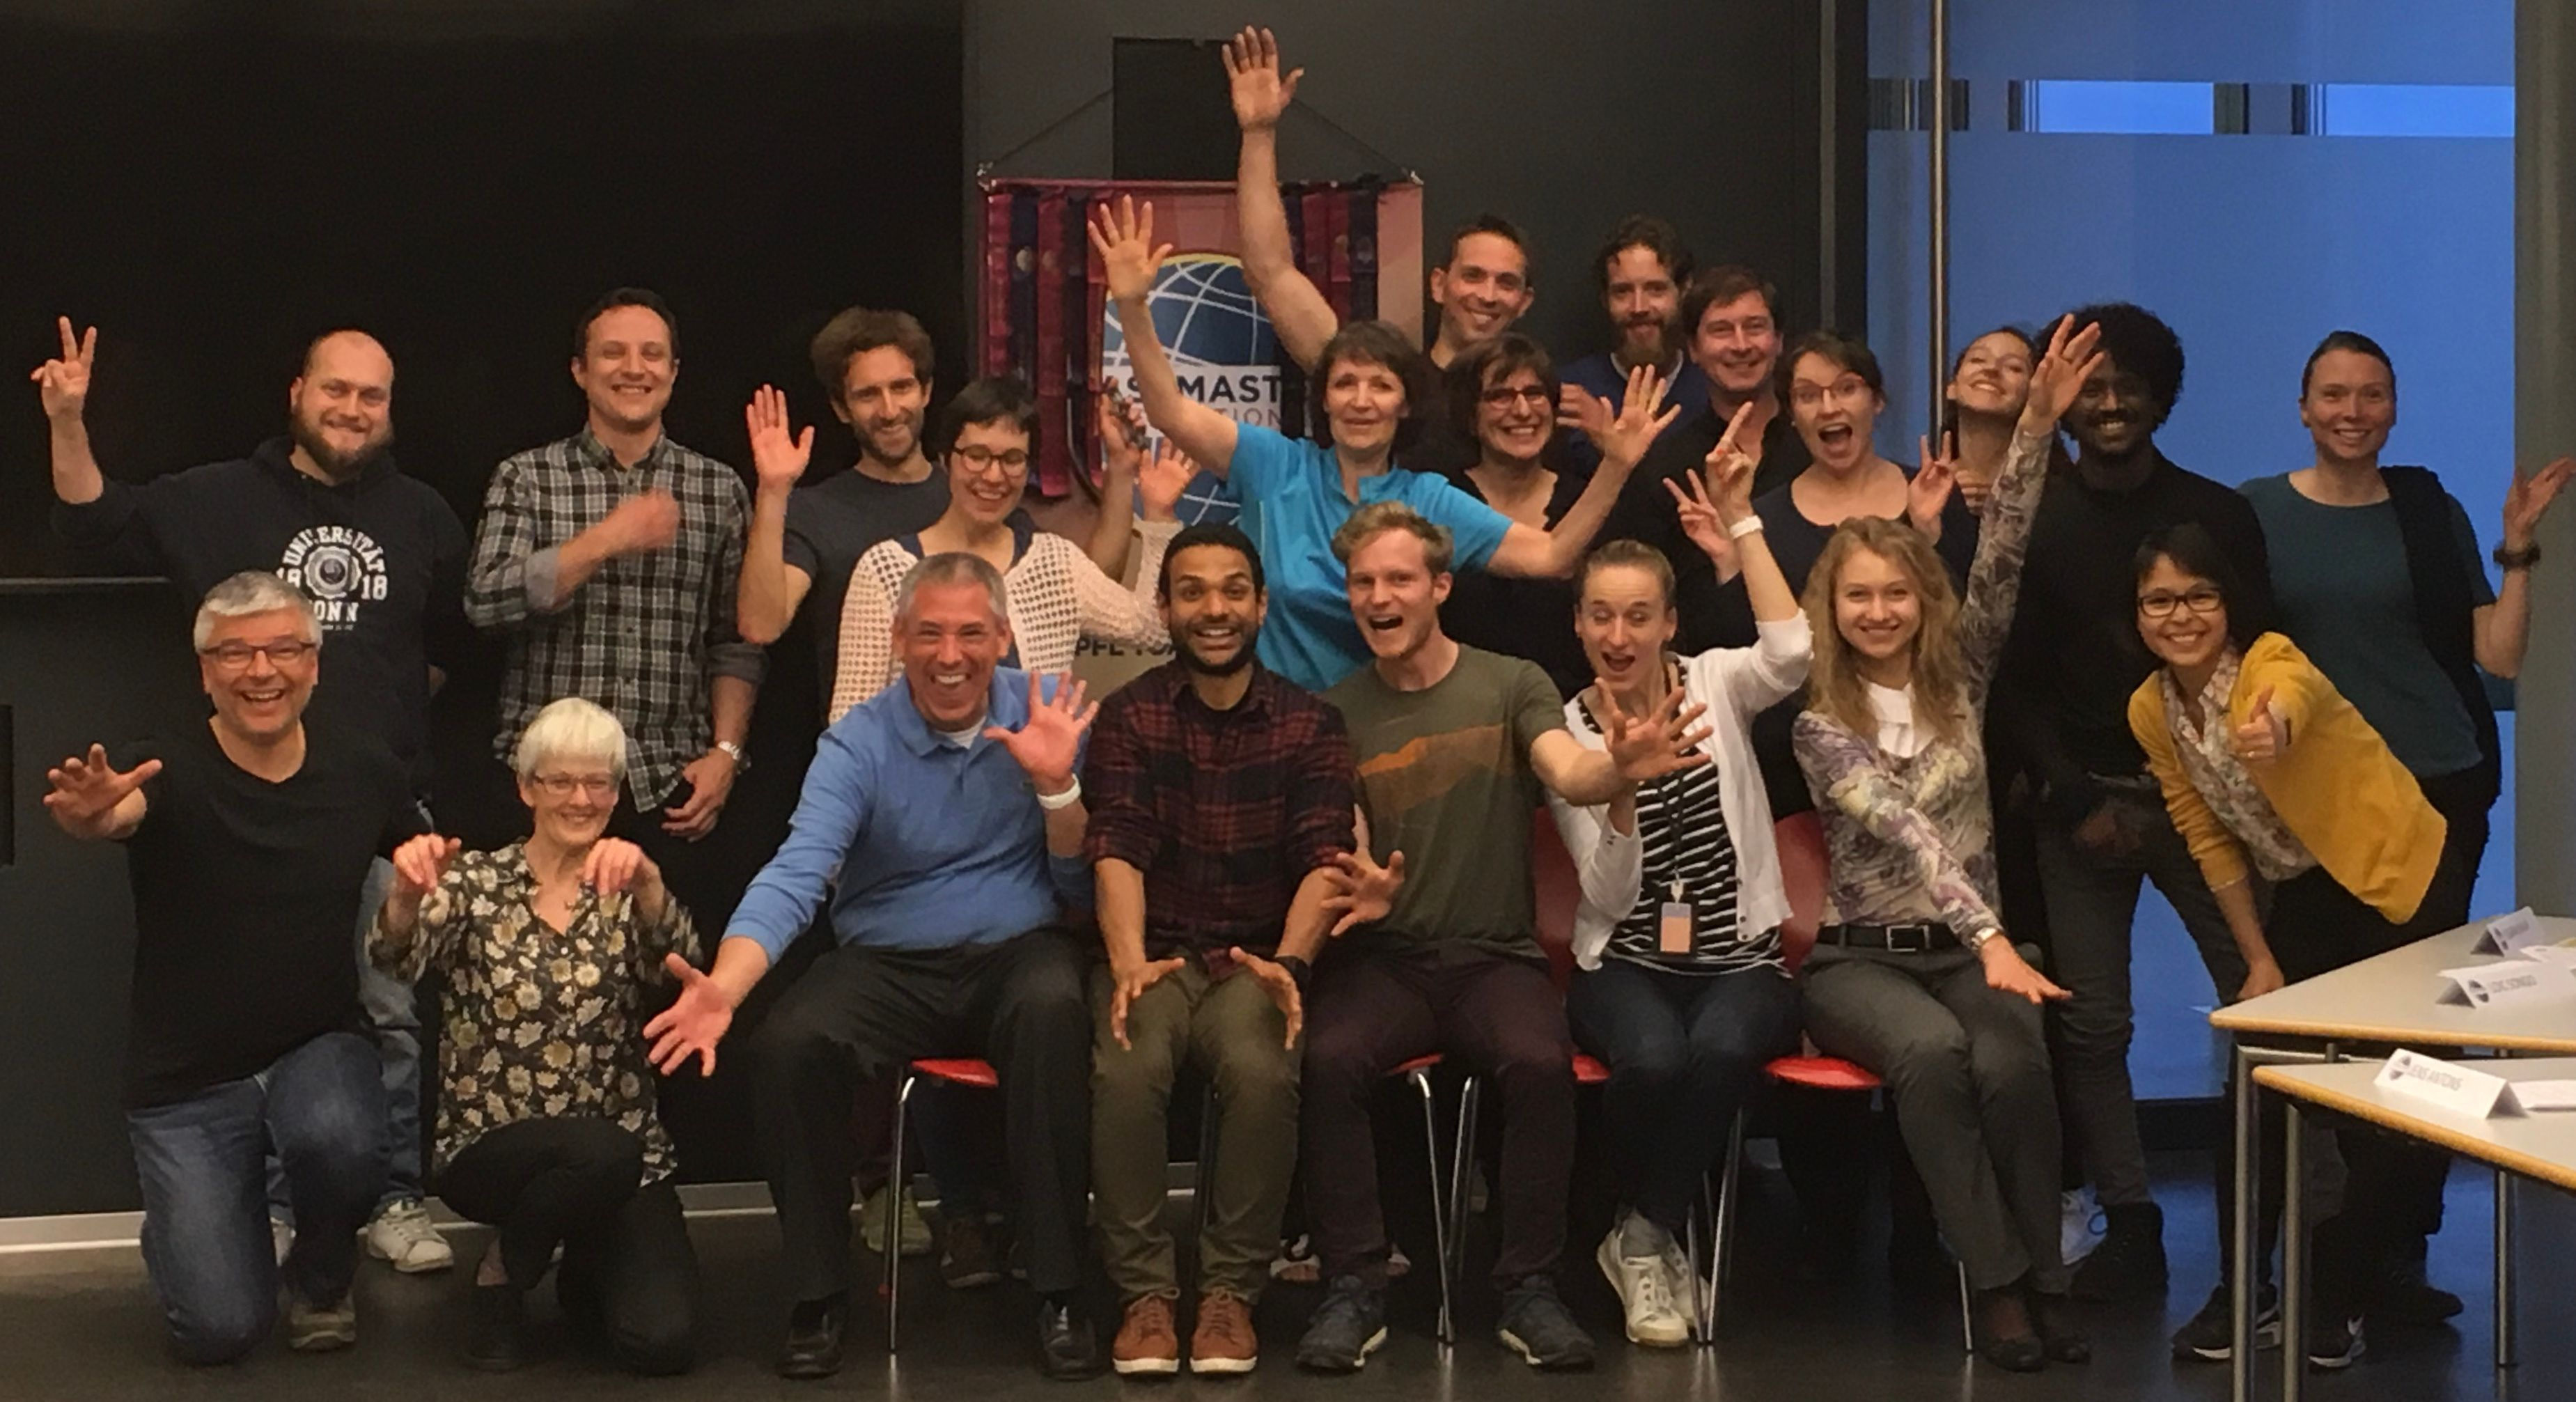 International Toastmasters Club at EPFL Lausanne